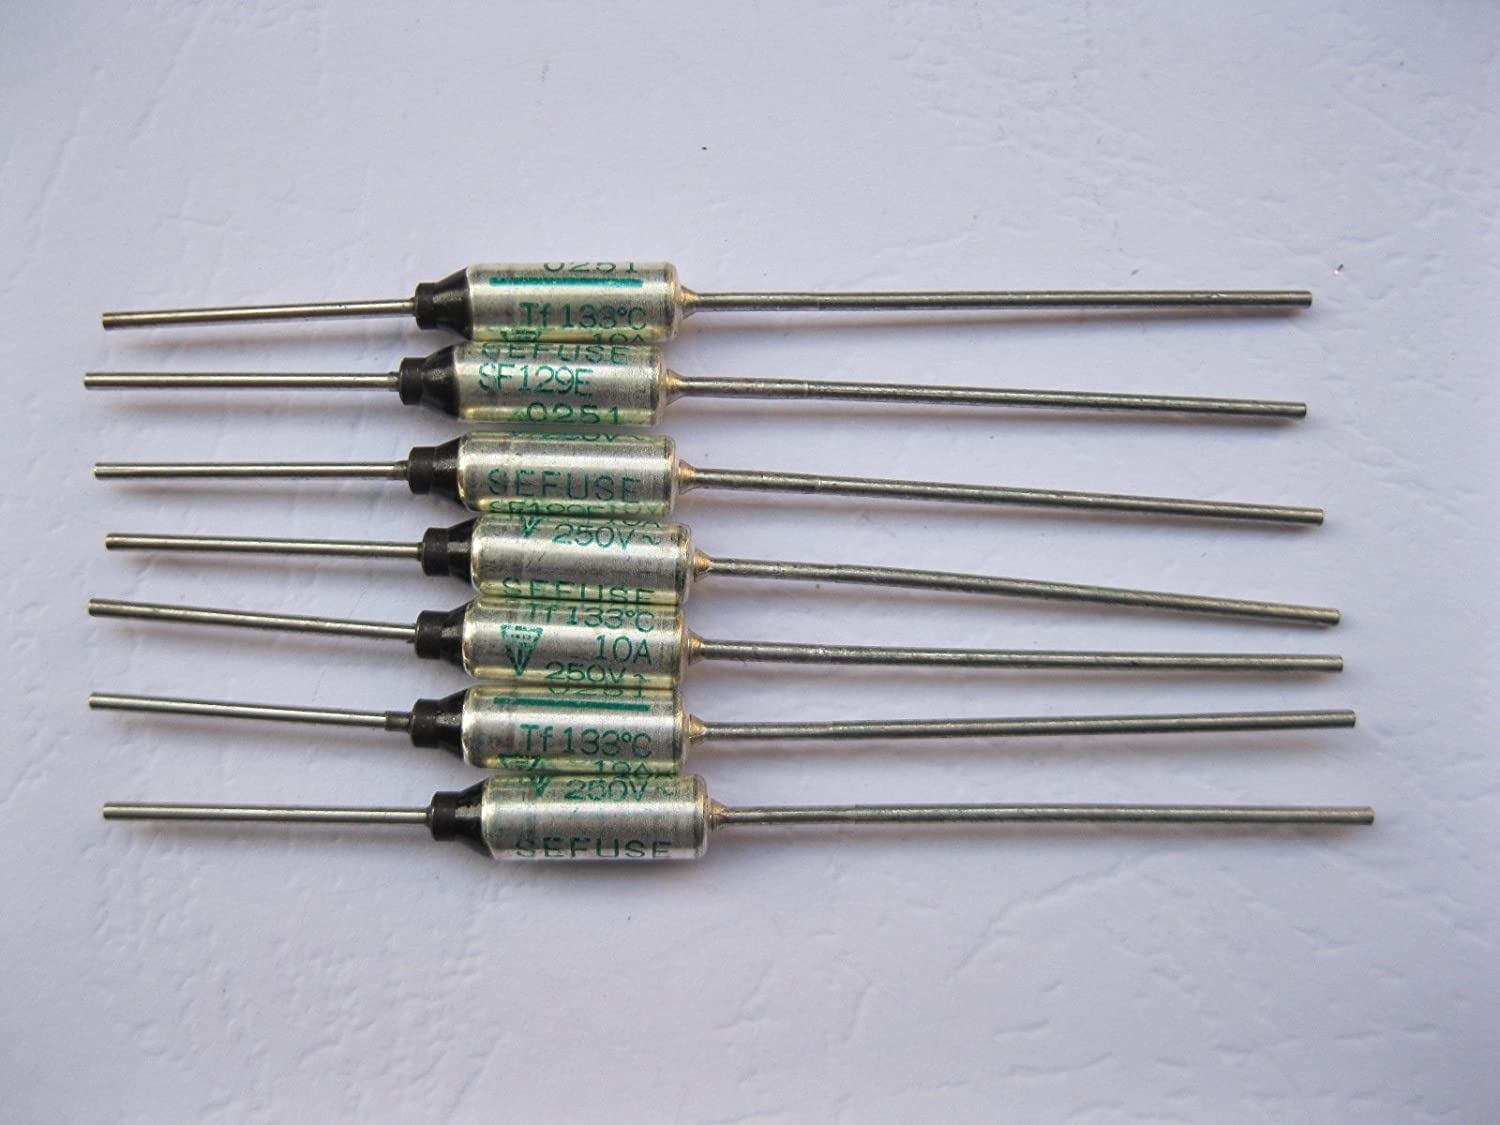 five 15A by 120V THERMAL CUTOFF FUSE 139°C degree LOT of 5